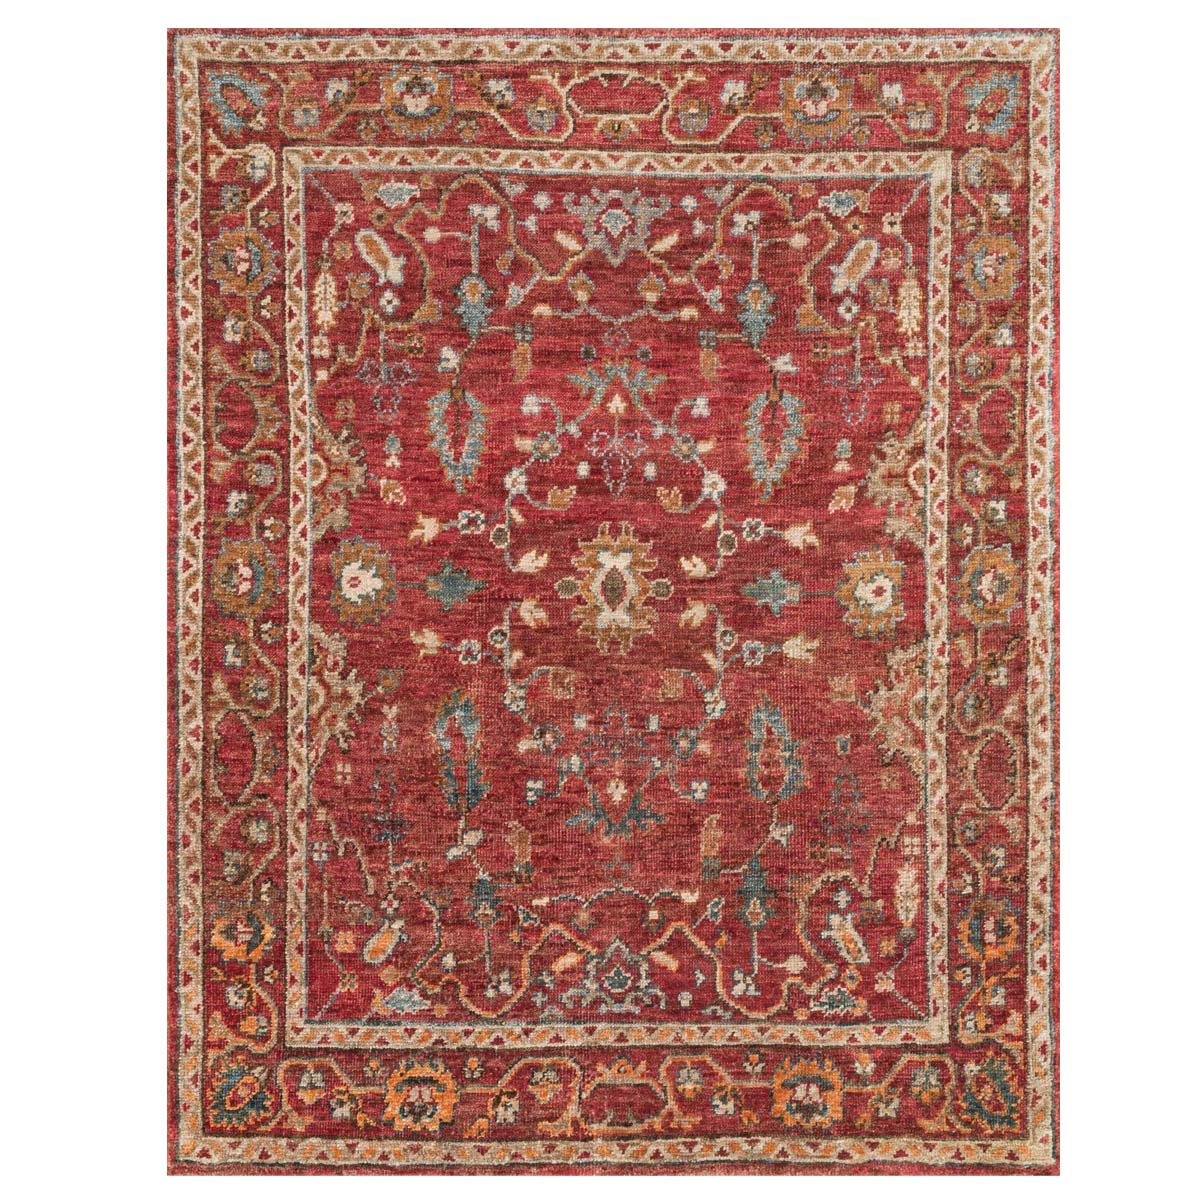 Saloon Red Rug - 9 x 12